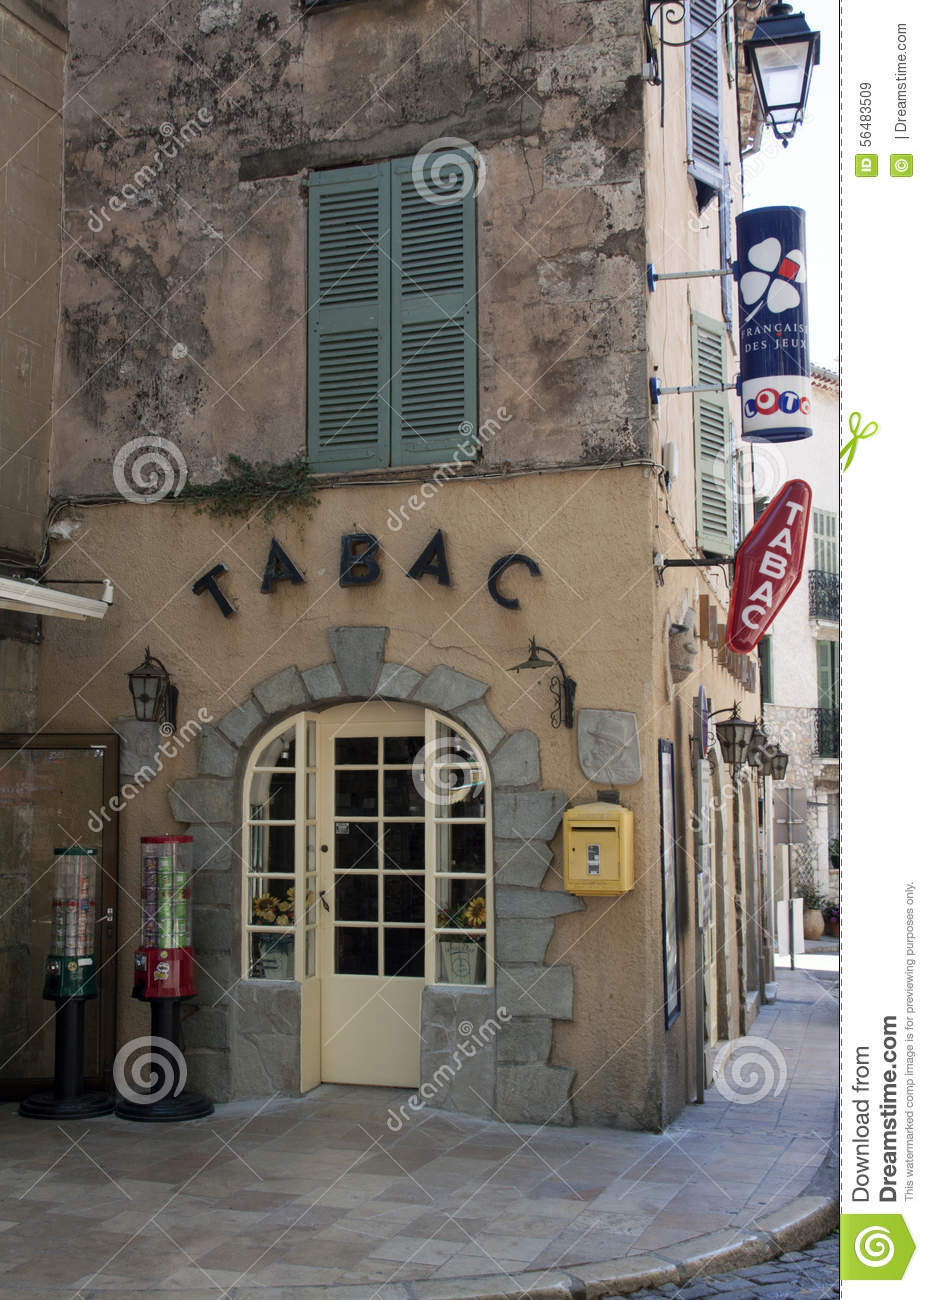 french bar tabac shop in avignon editorial stock image image of tourism wall 56483509. Black Bedroom Furniture Sets. Home Design Ideas